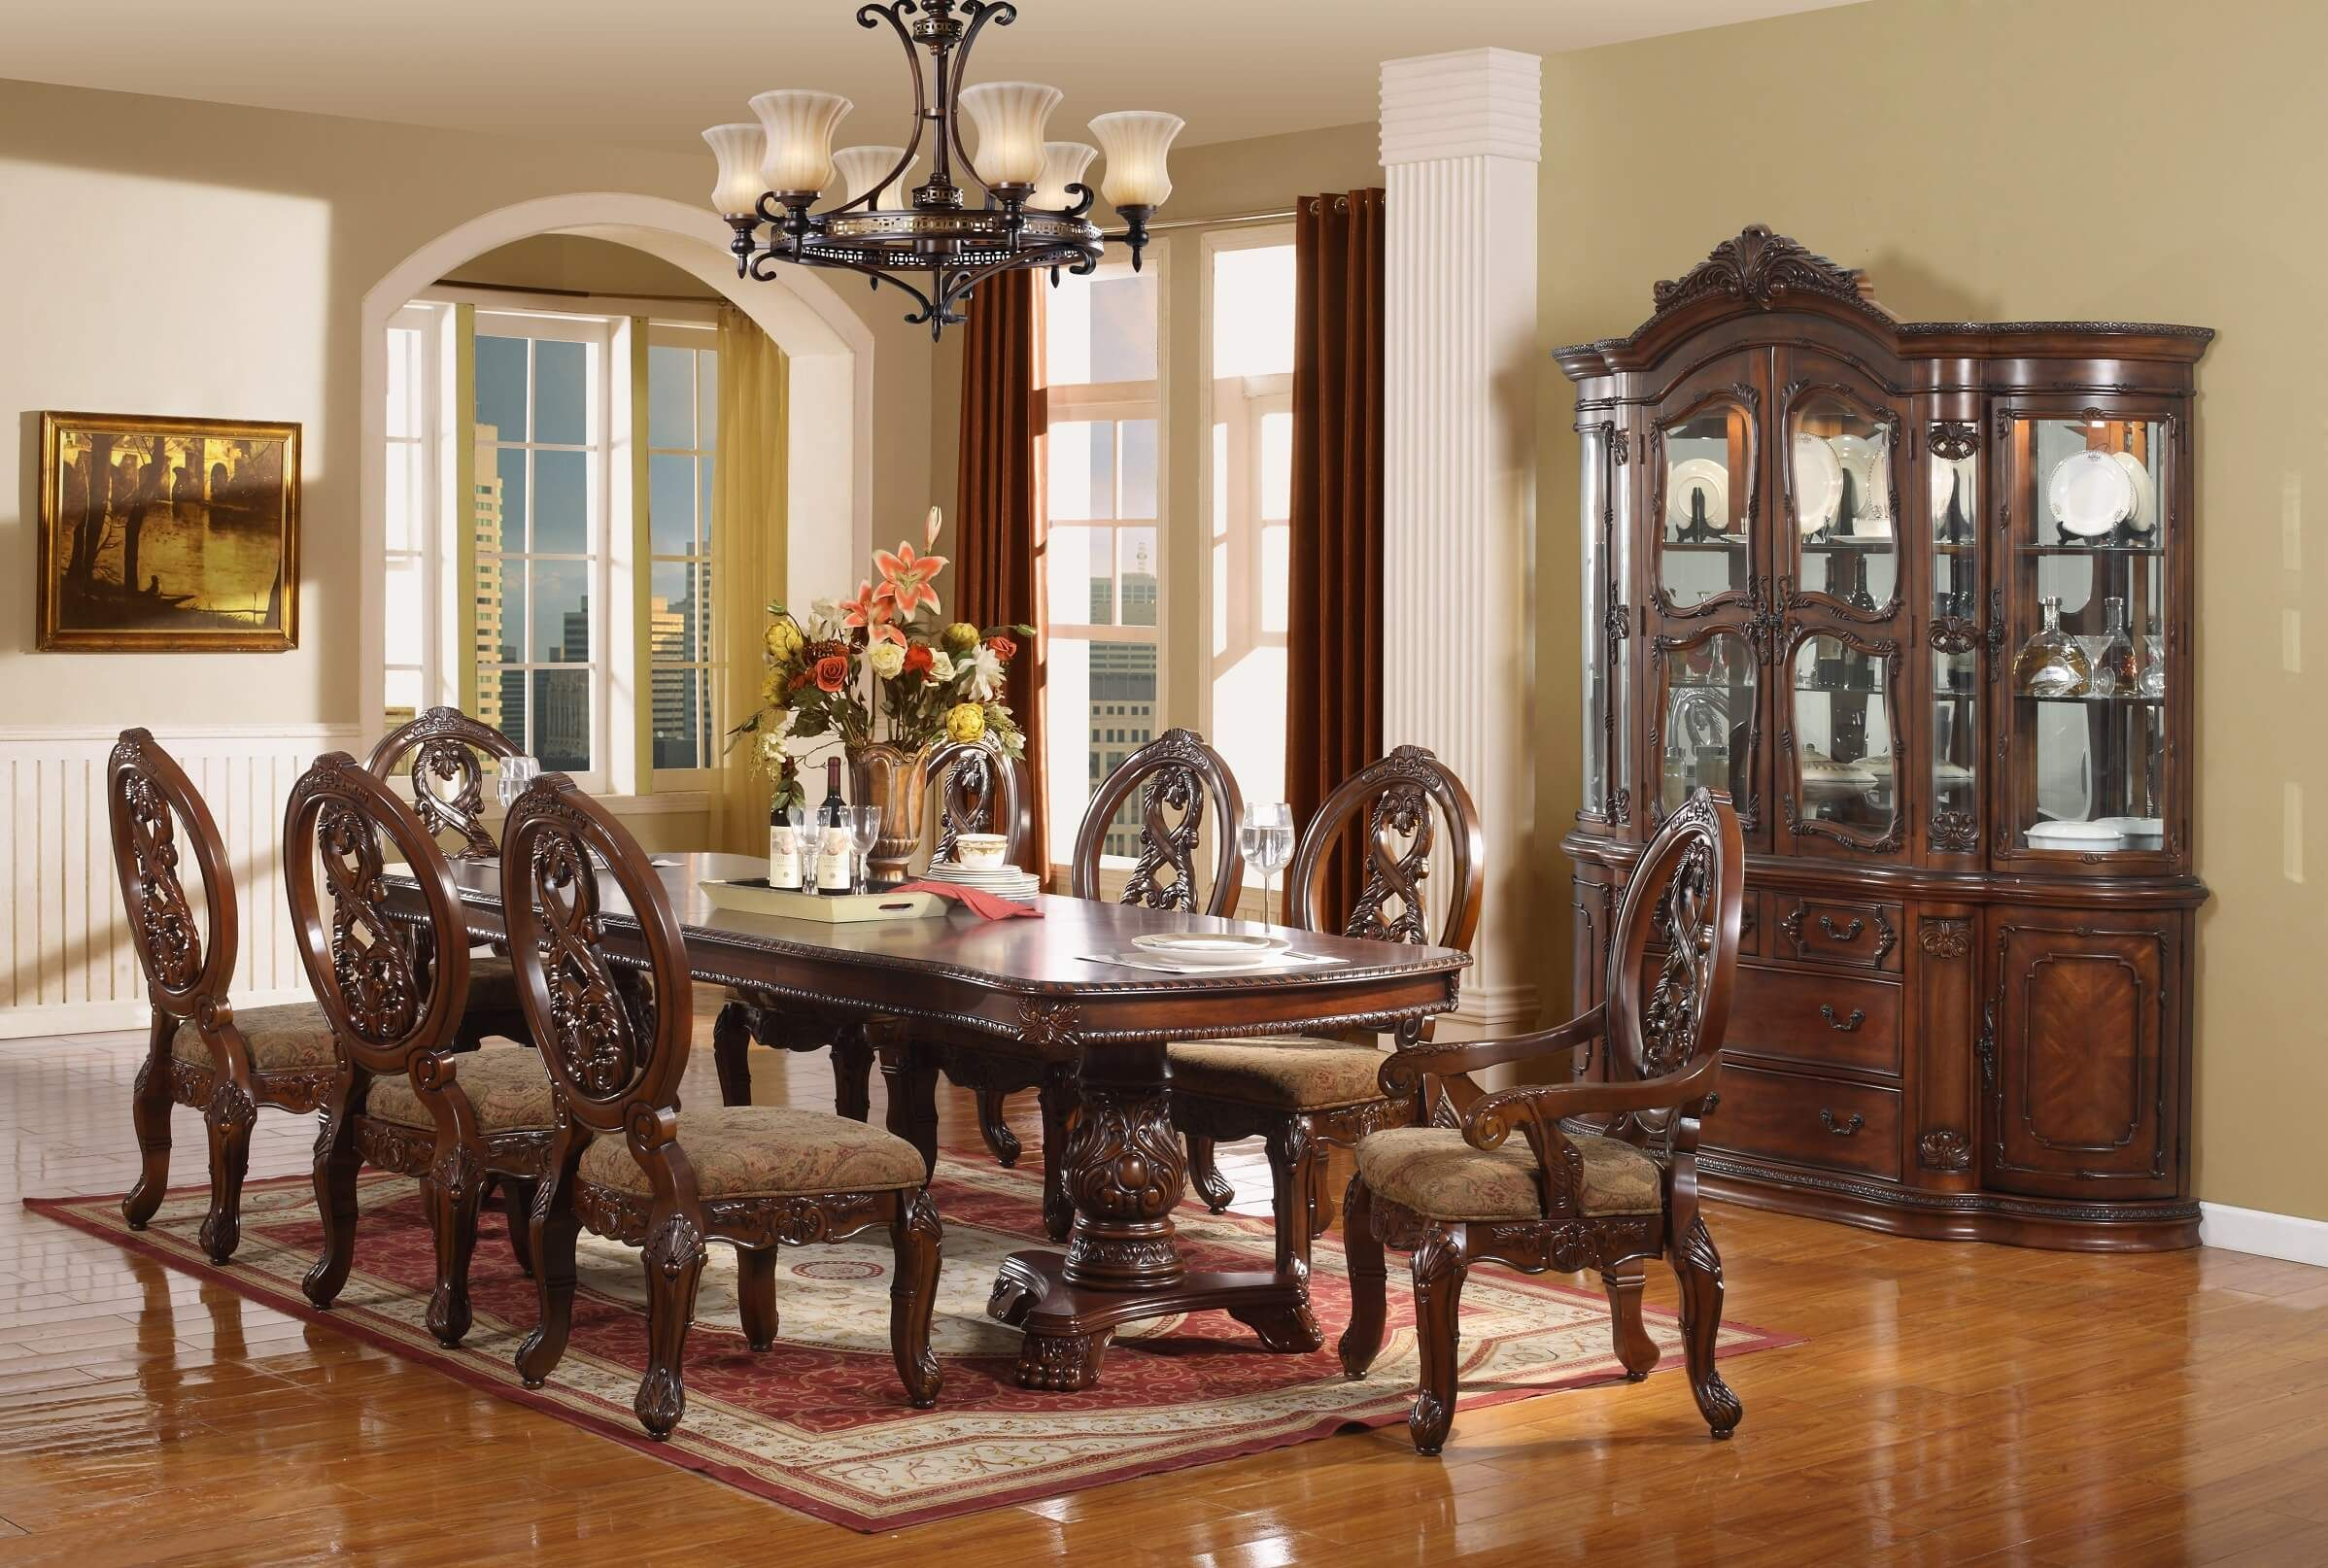 Dining Room Sets 7 Pc Cheap Piece Under 500 Dollars7 On Sale White